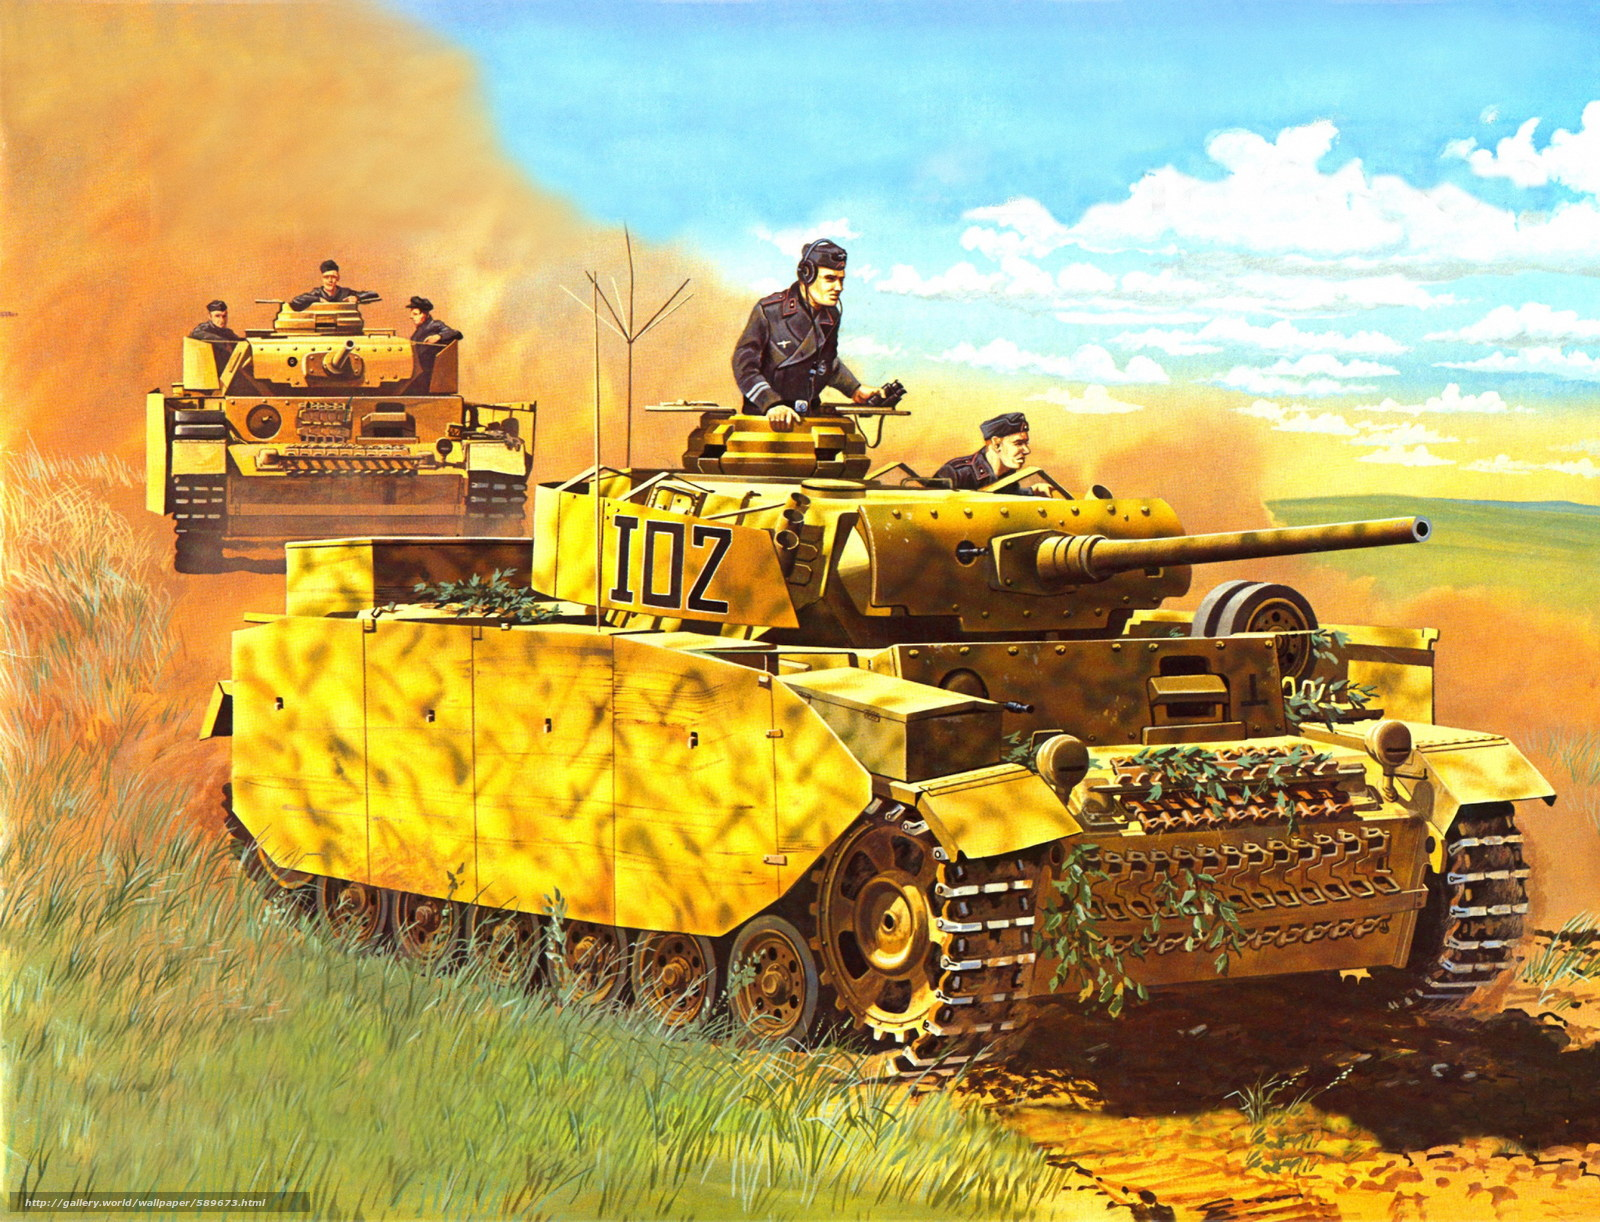 Attractive Free Download The Art Of War #1: 589673_art_tanki_germaniya_vermaht_vov_panzerkampfwagen-i_2619x2000_www.Gde-Fon.com.jpg